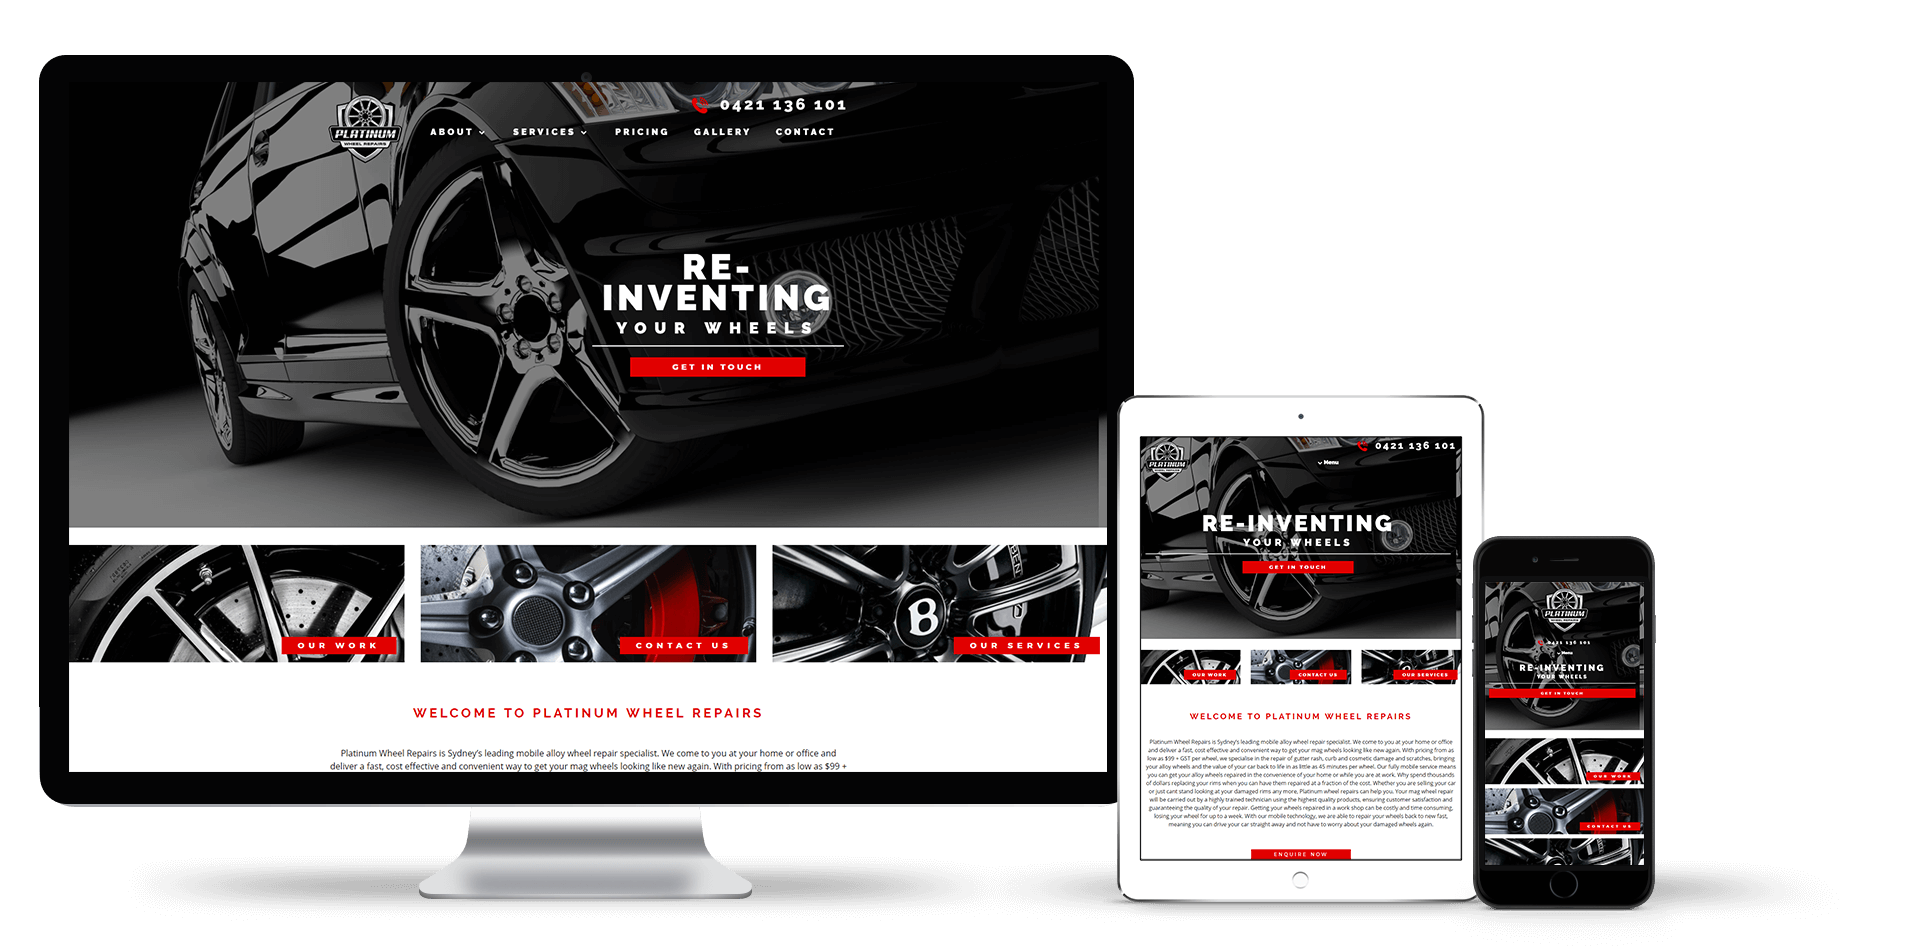 Image of the Platinum Wheel Repairs website design on a desktop, laptop and smart phone